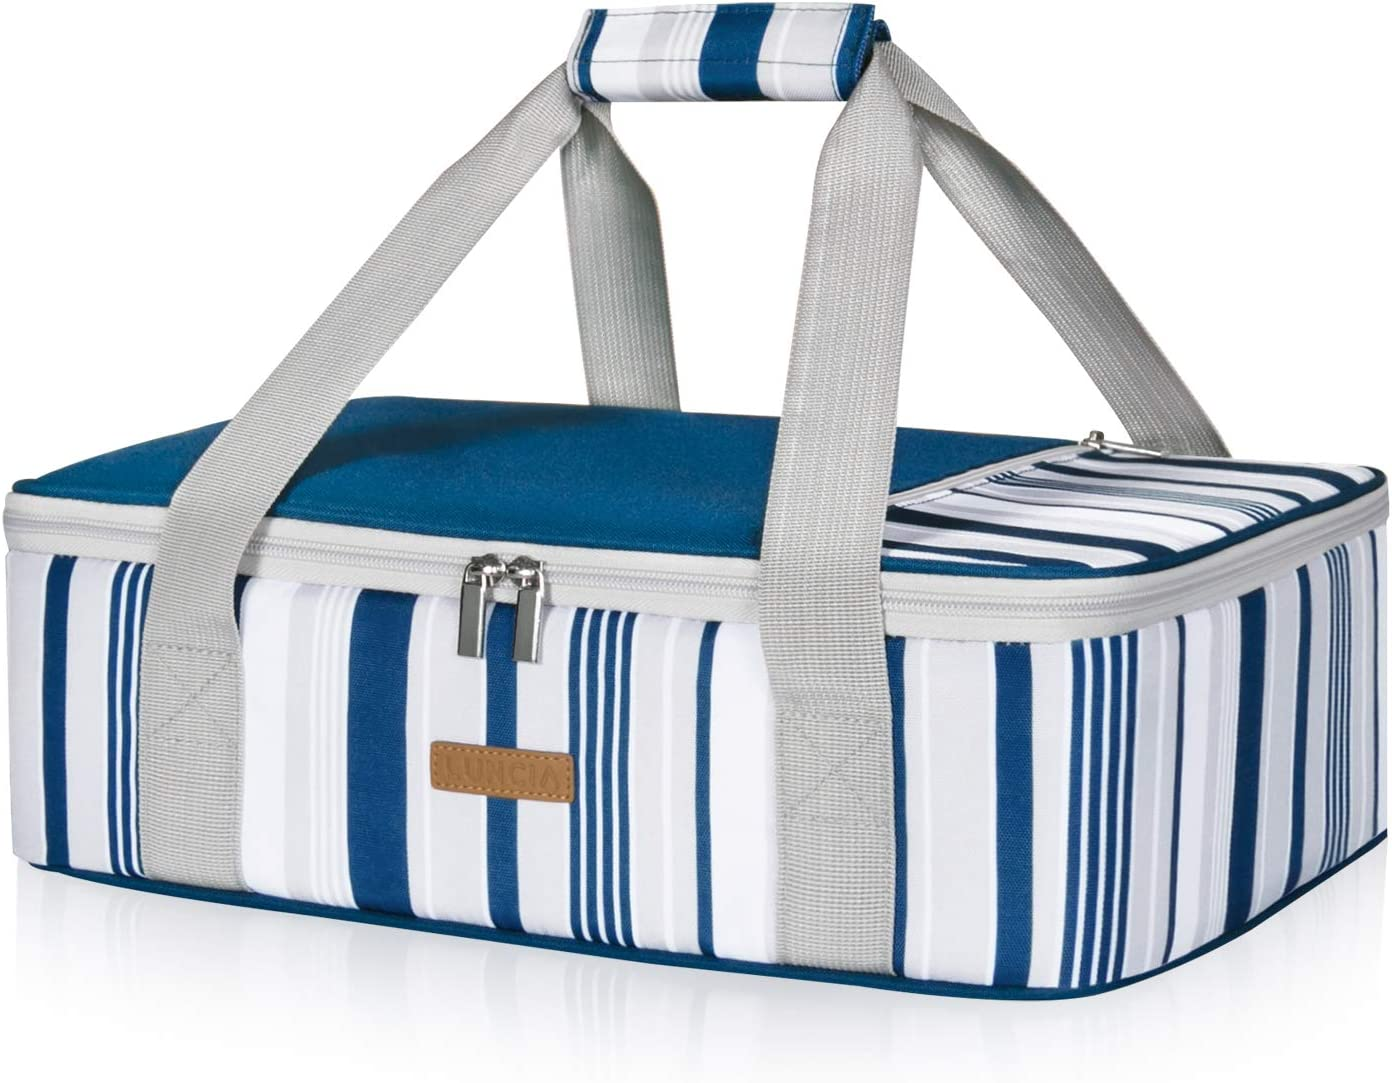 "LUNCIA Insulated Casserole Carrier for Hot or Cold Food, Lasagna Lugger Tote for Potluck Parties/Picnic/Cookouts, Fits 9""x13"" Baking Dish, Blue"